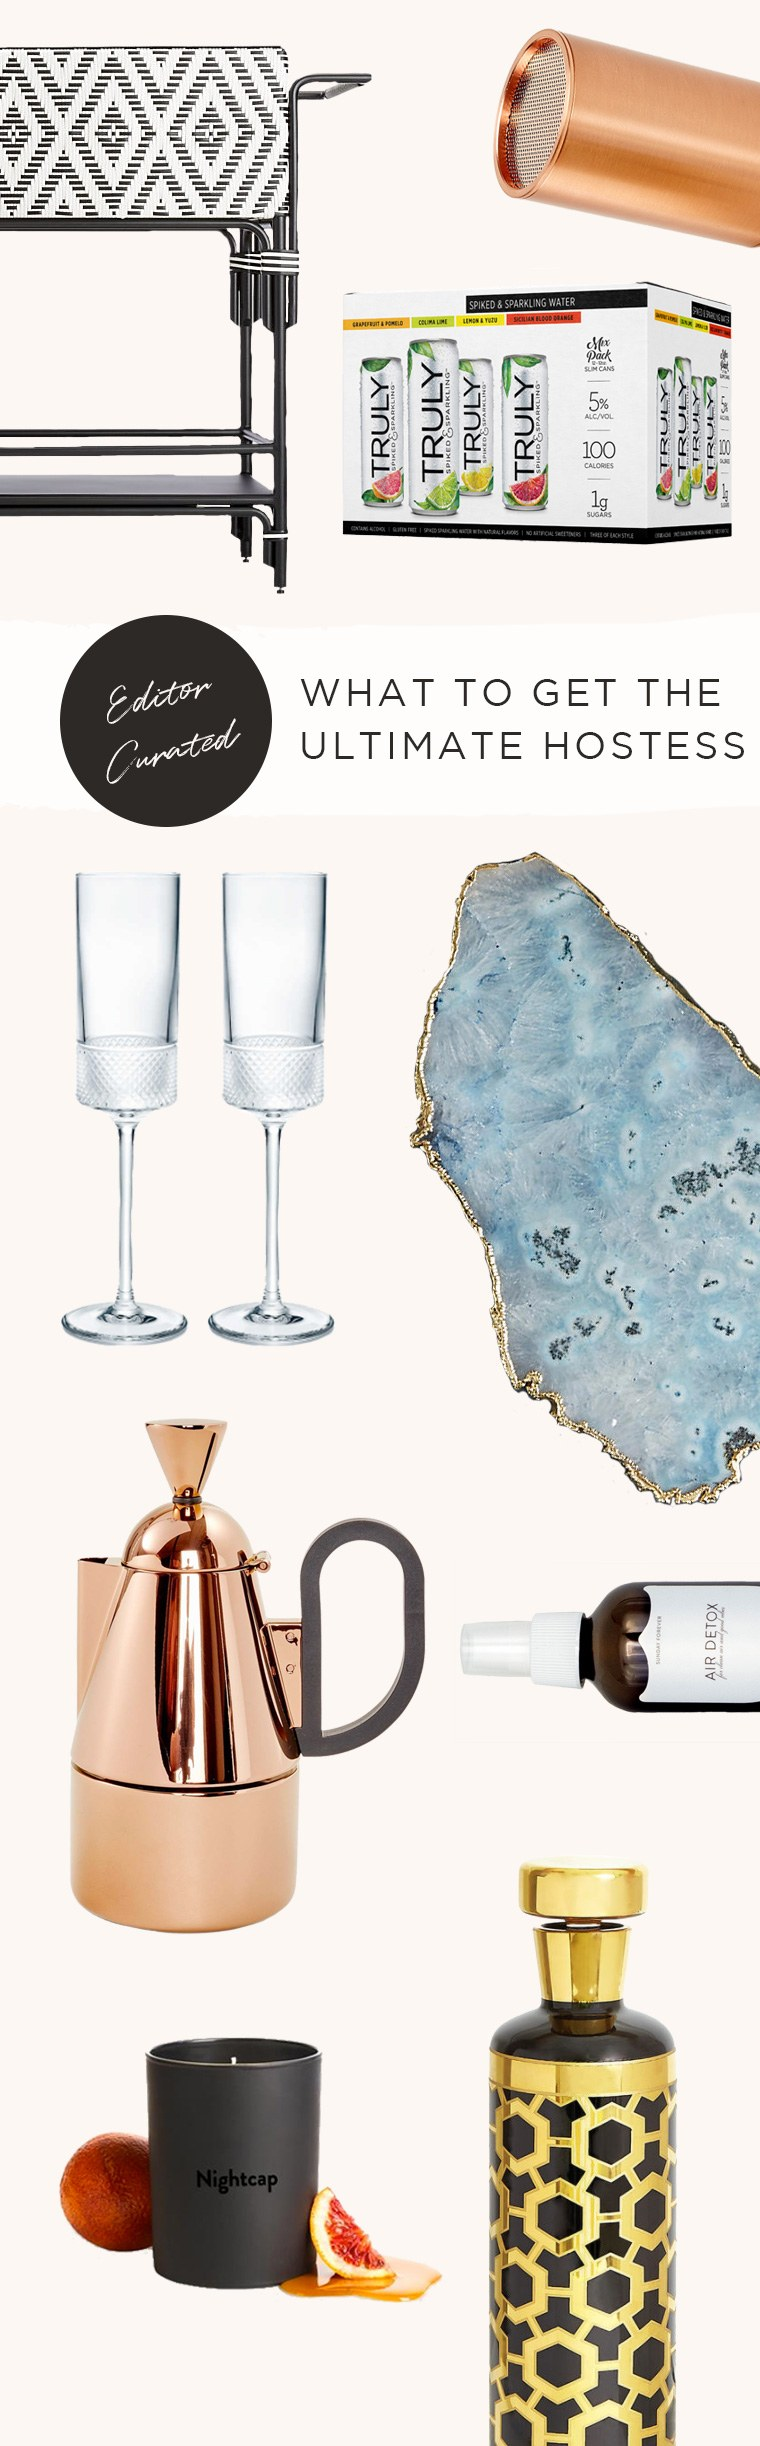 holiday hostess gift guide Truly Spiked & Sparkling